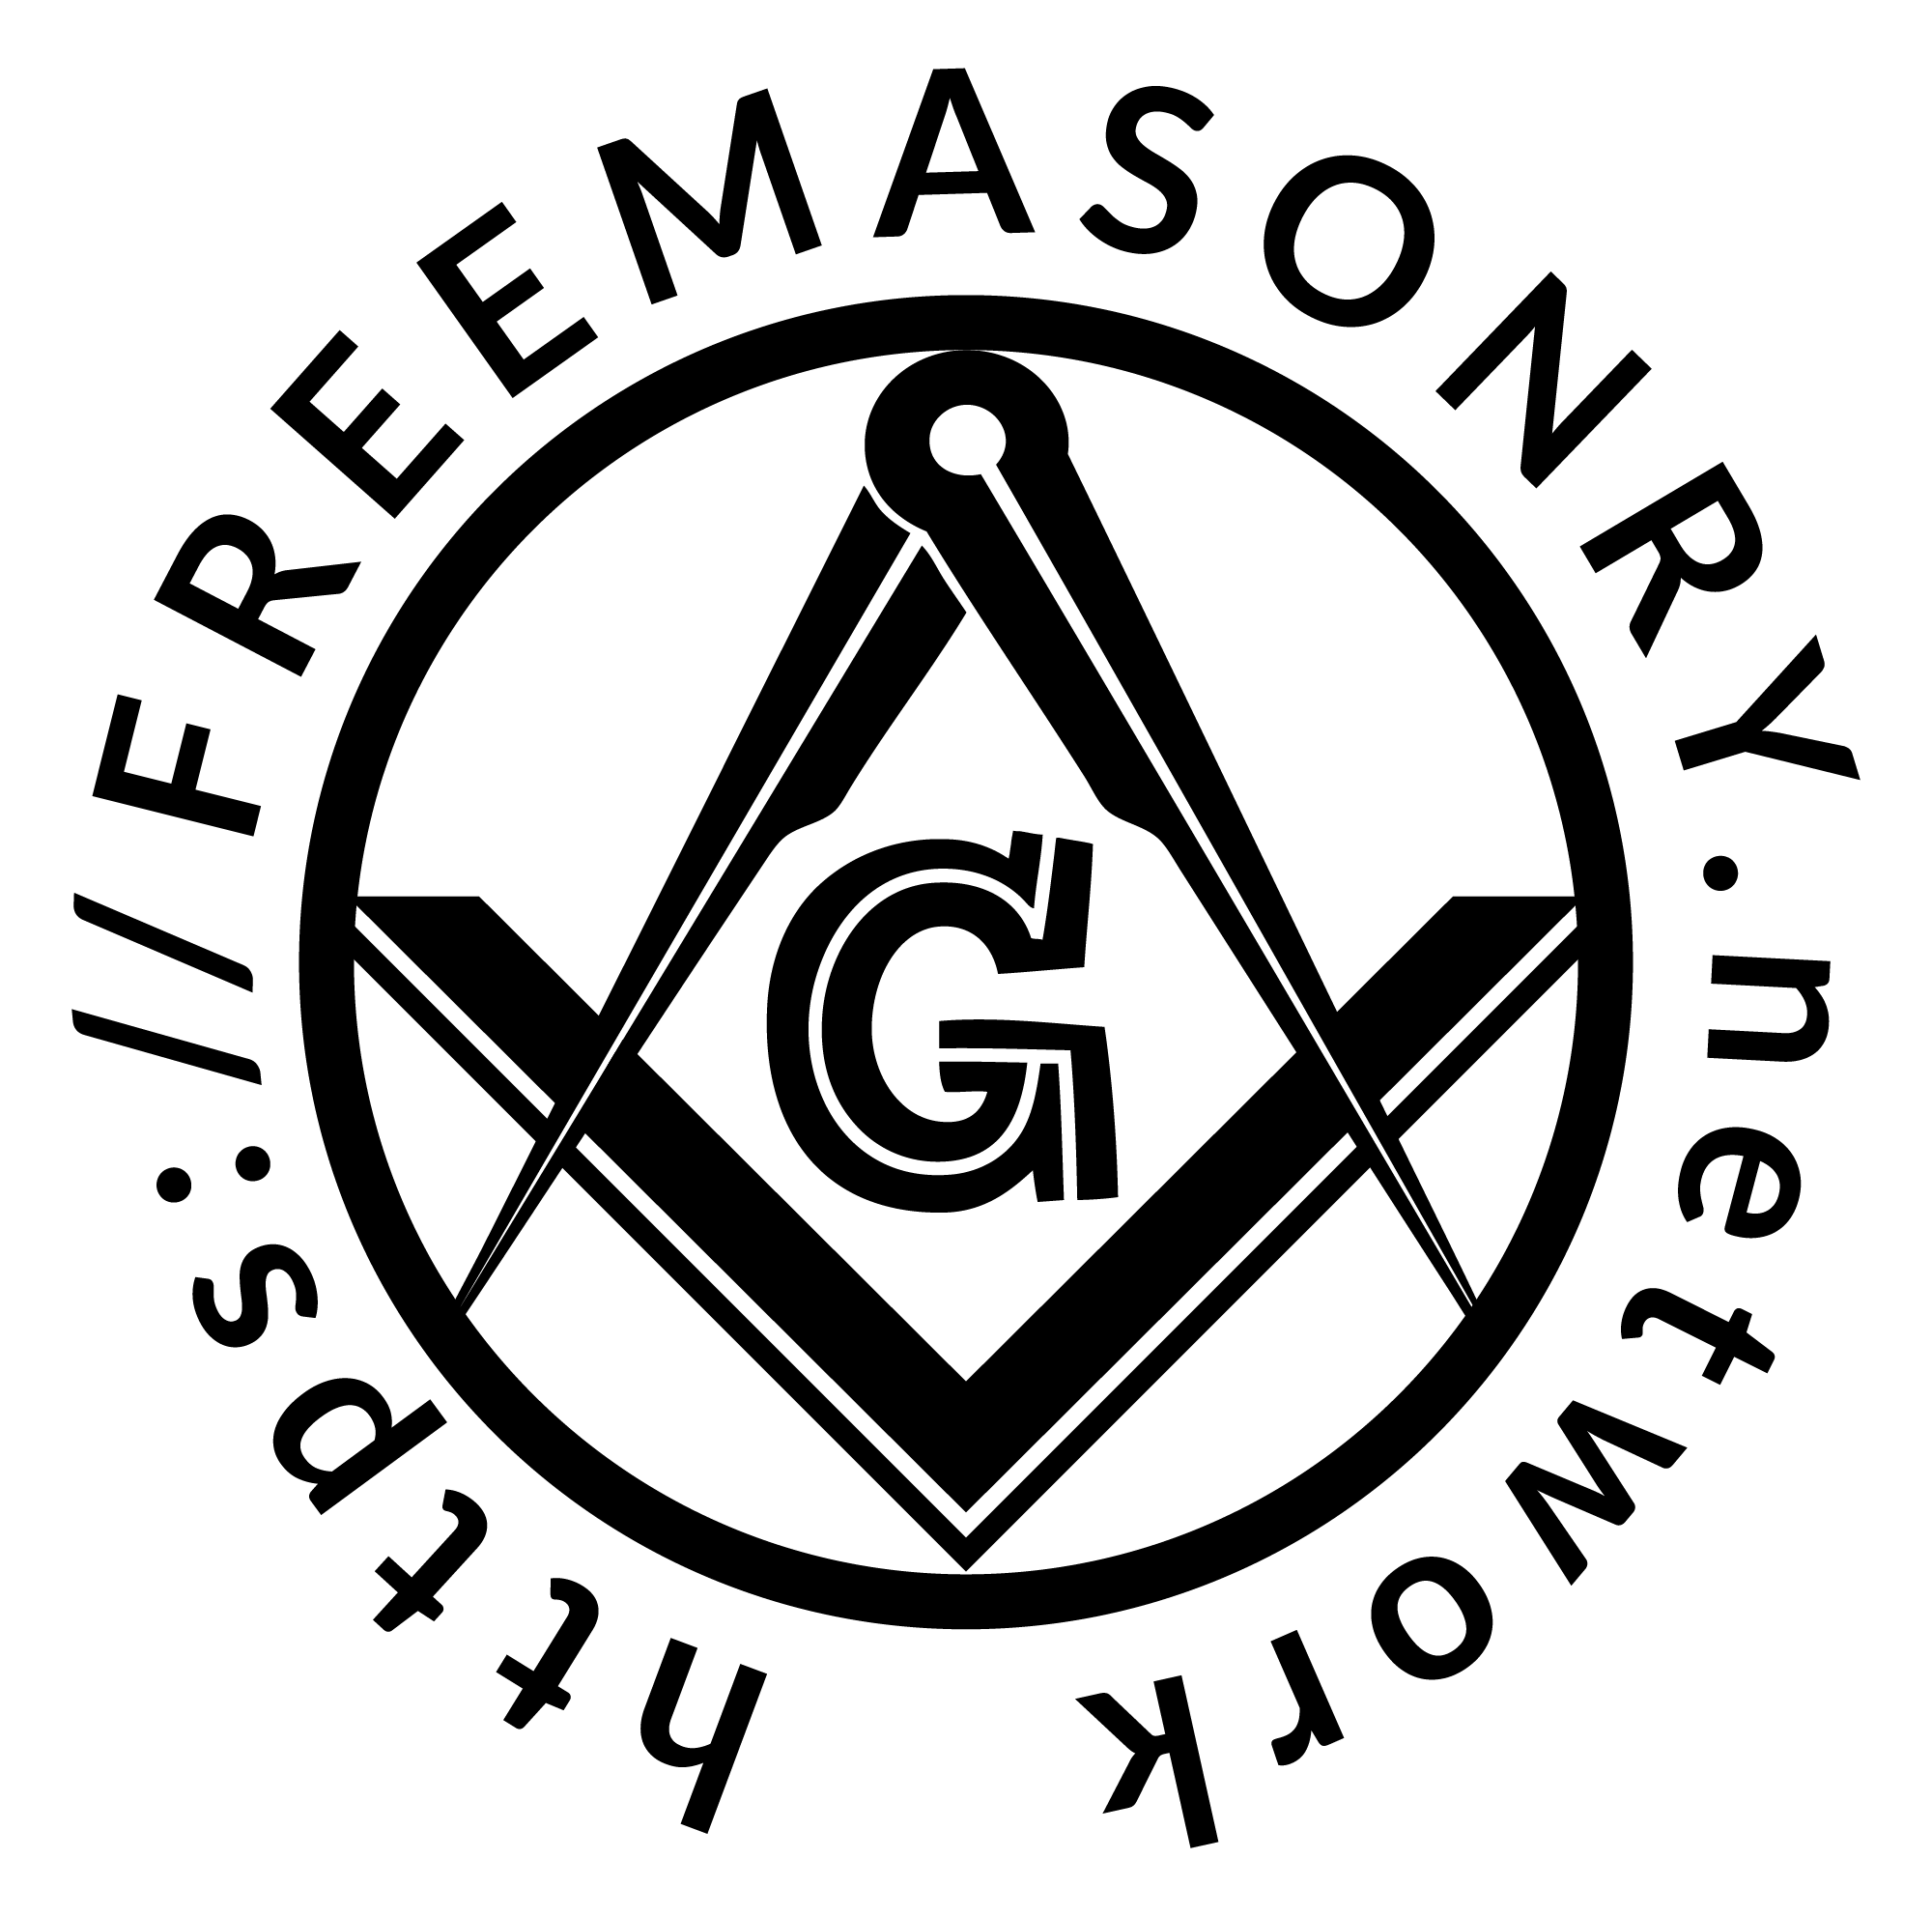 tHE hISTORICAL sOURCES OF fREEMASONRY